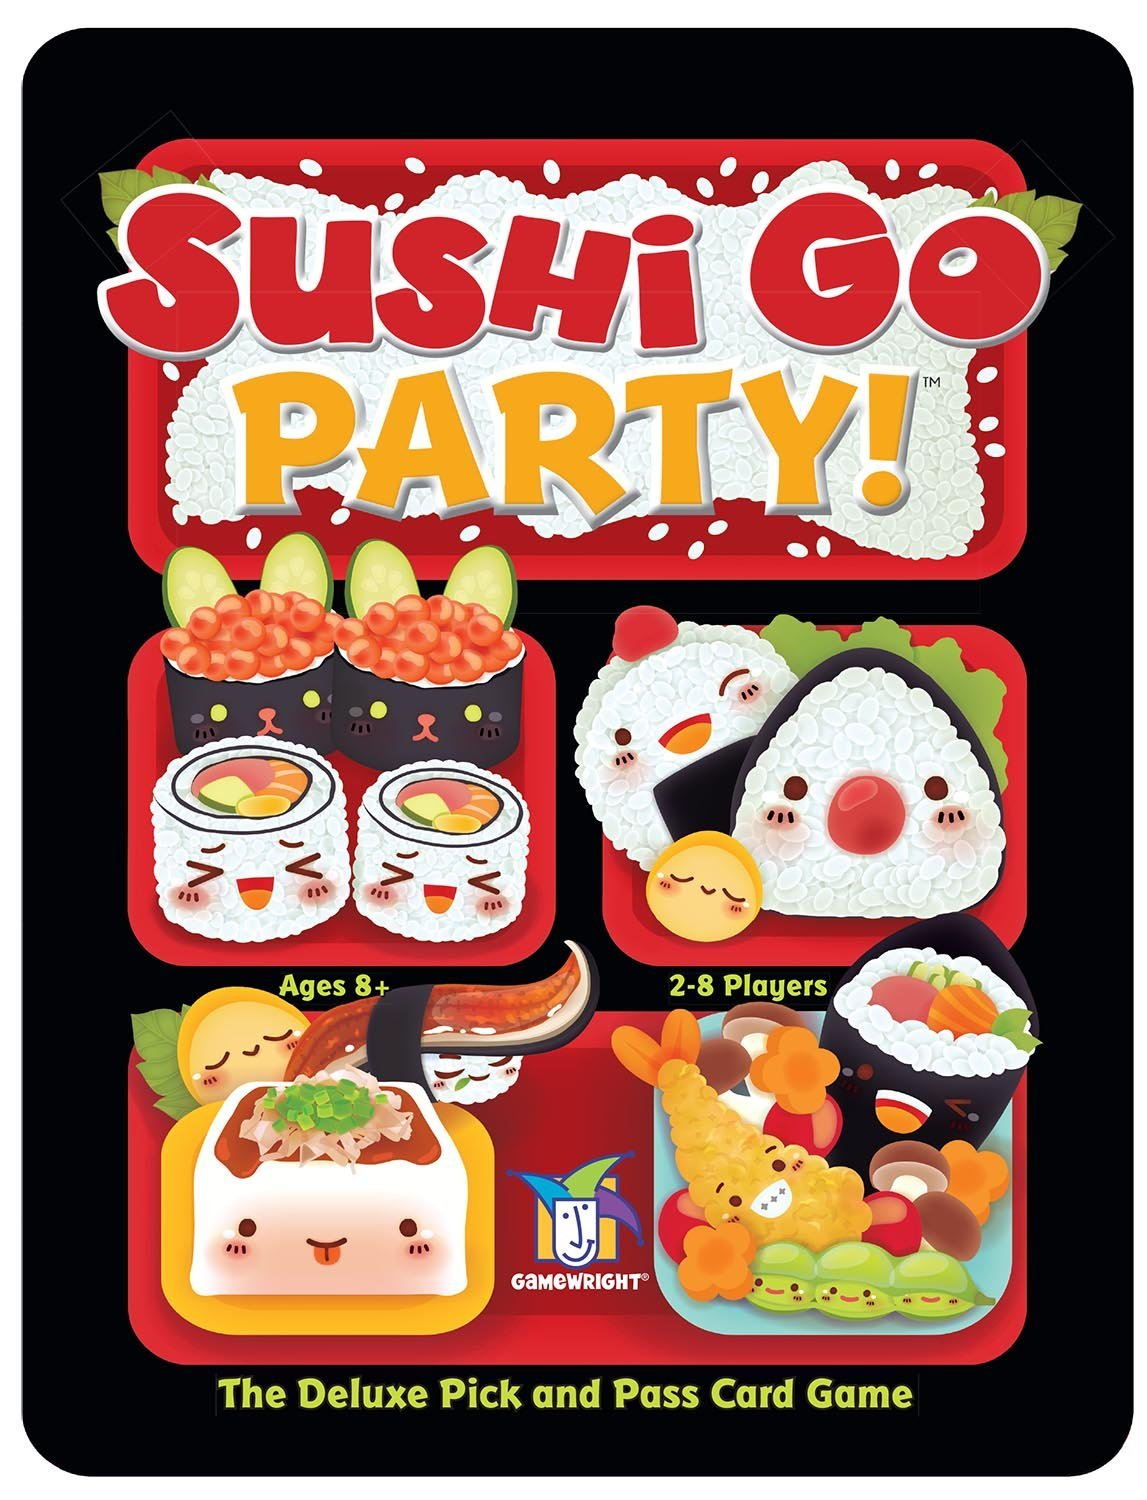 Sushi Go Party! - Assemble the most delectable sushi menu.2-8 playersclick for details